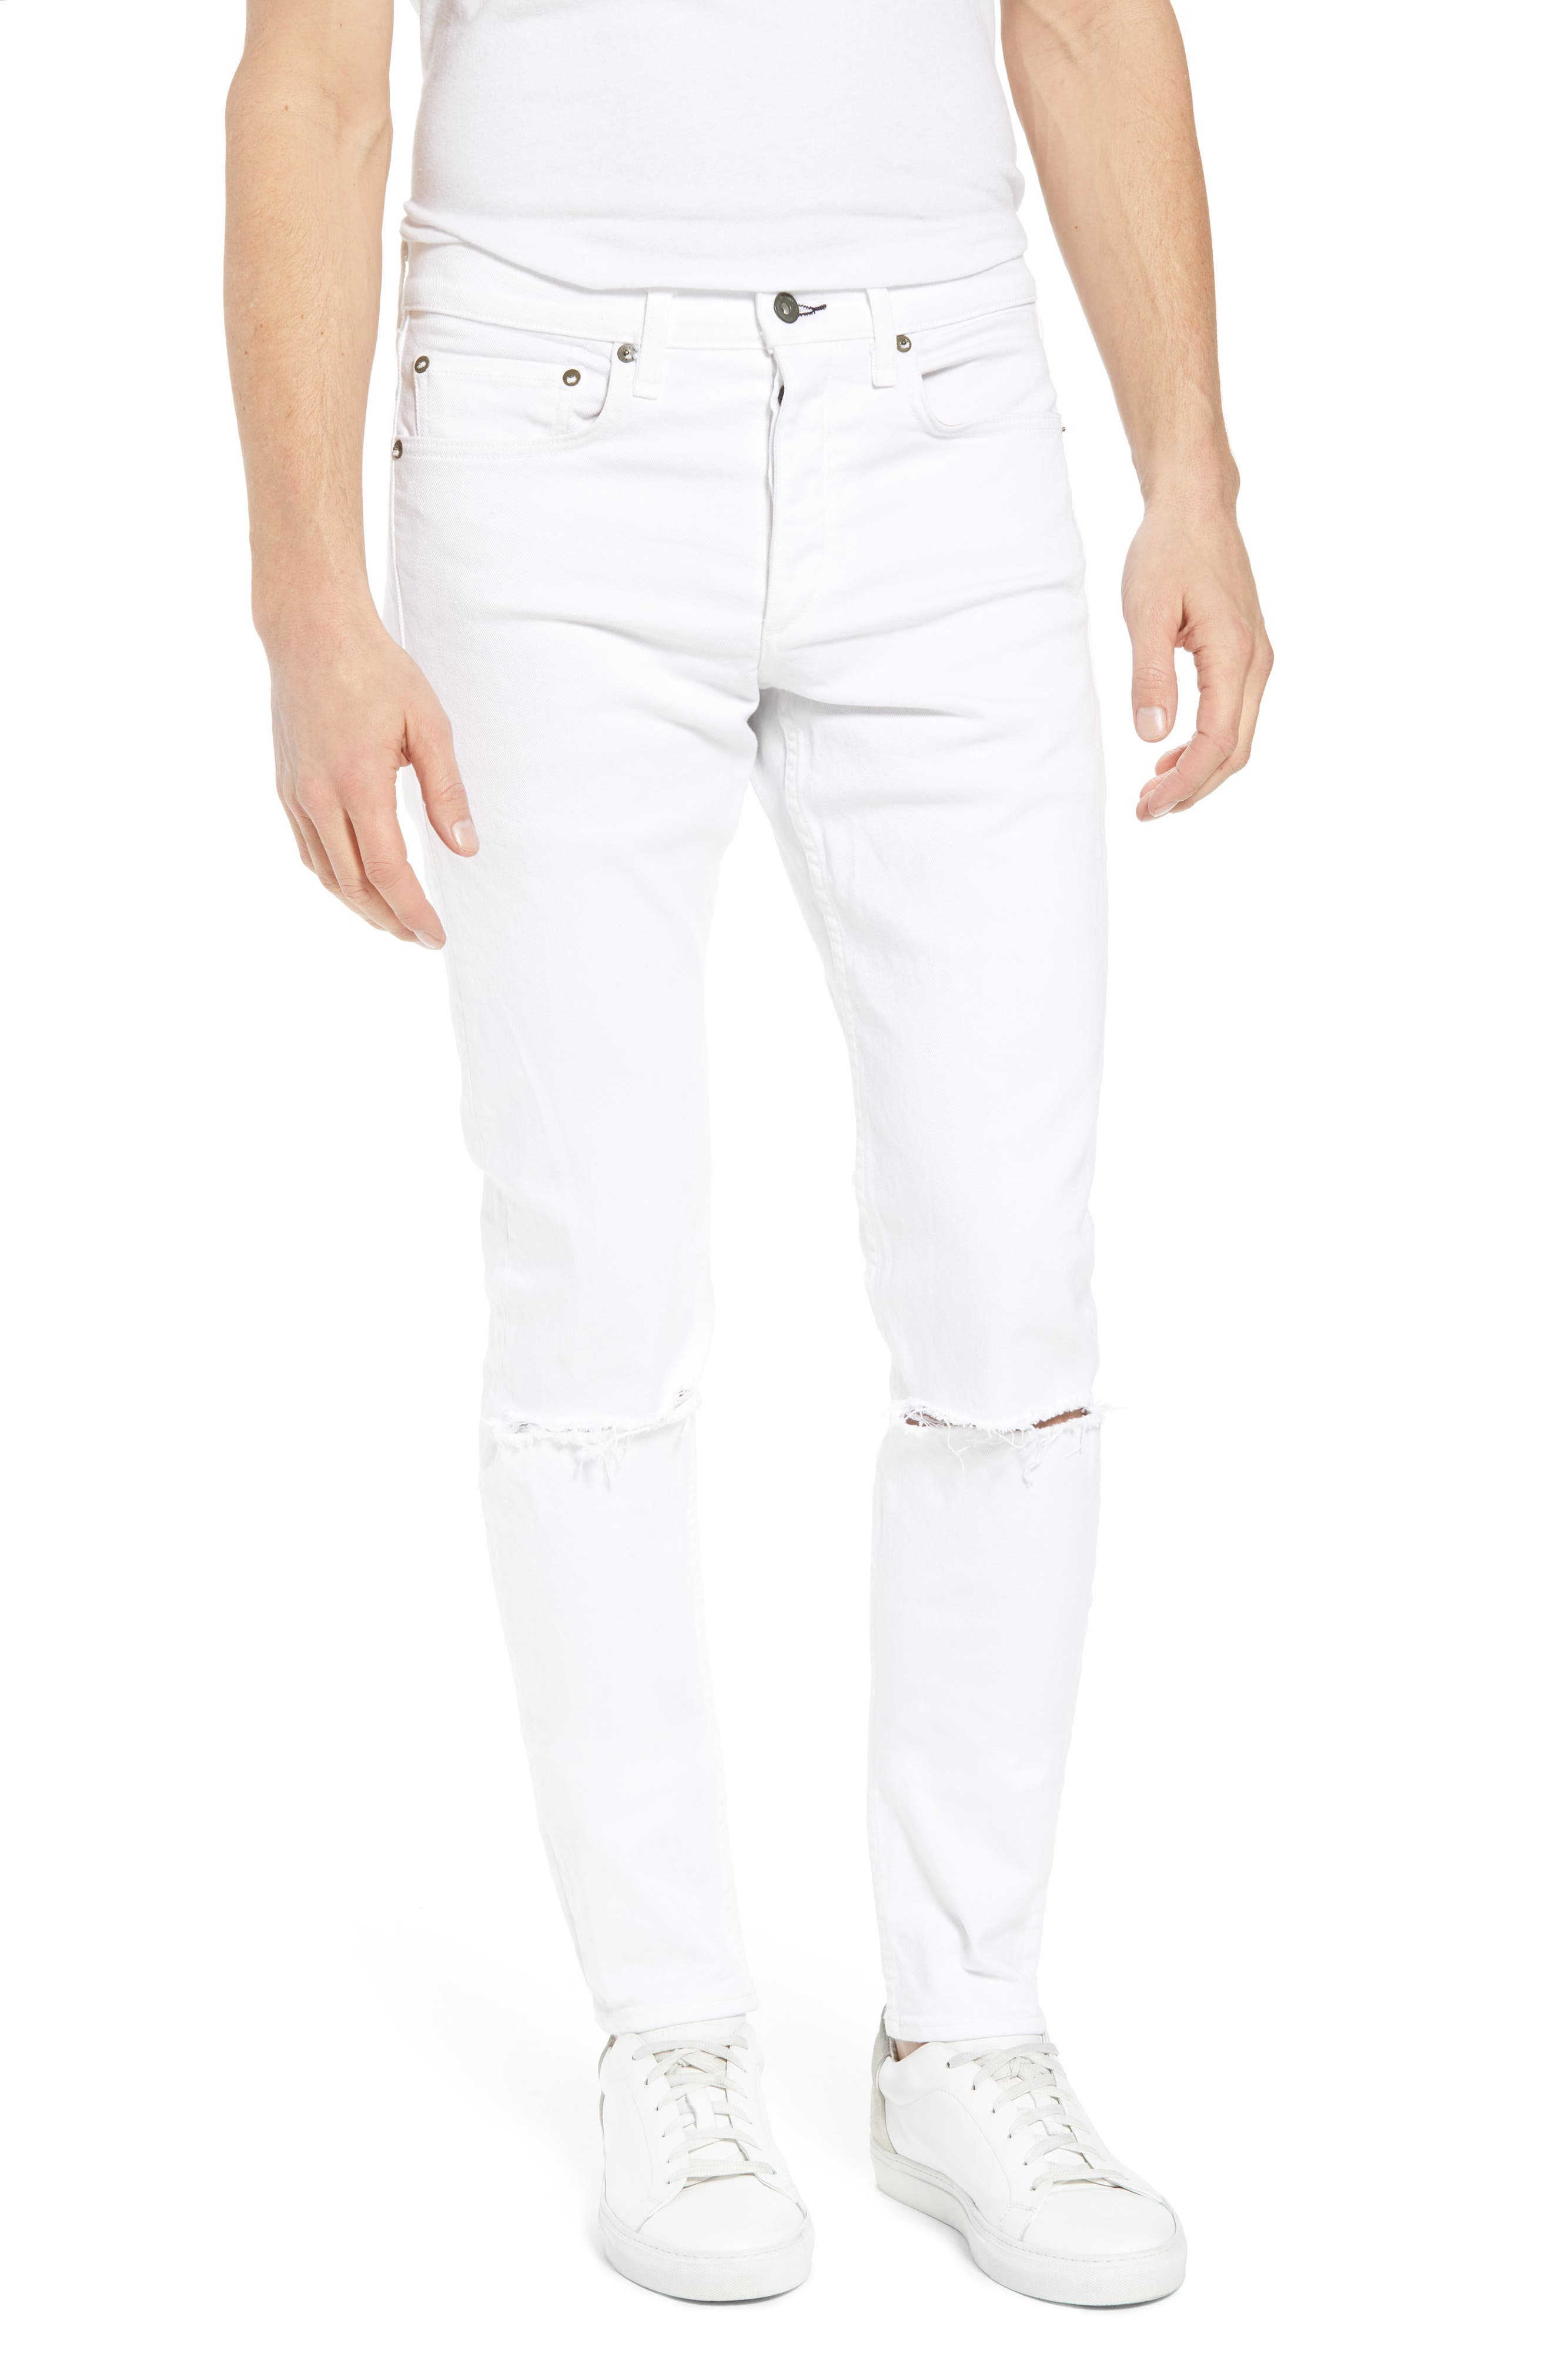 Fit 1 Skinny Fit Jeans,                             Main thumbnail 1, color,                             100